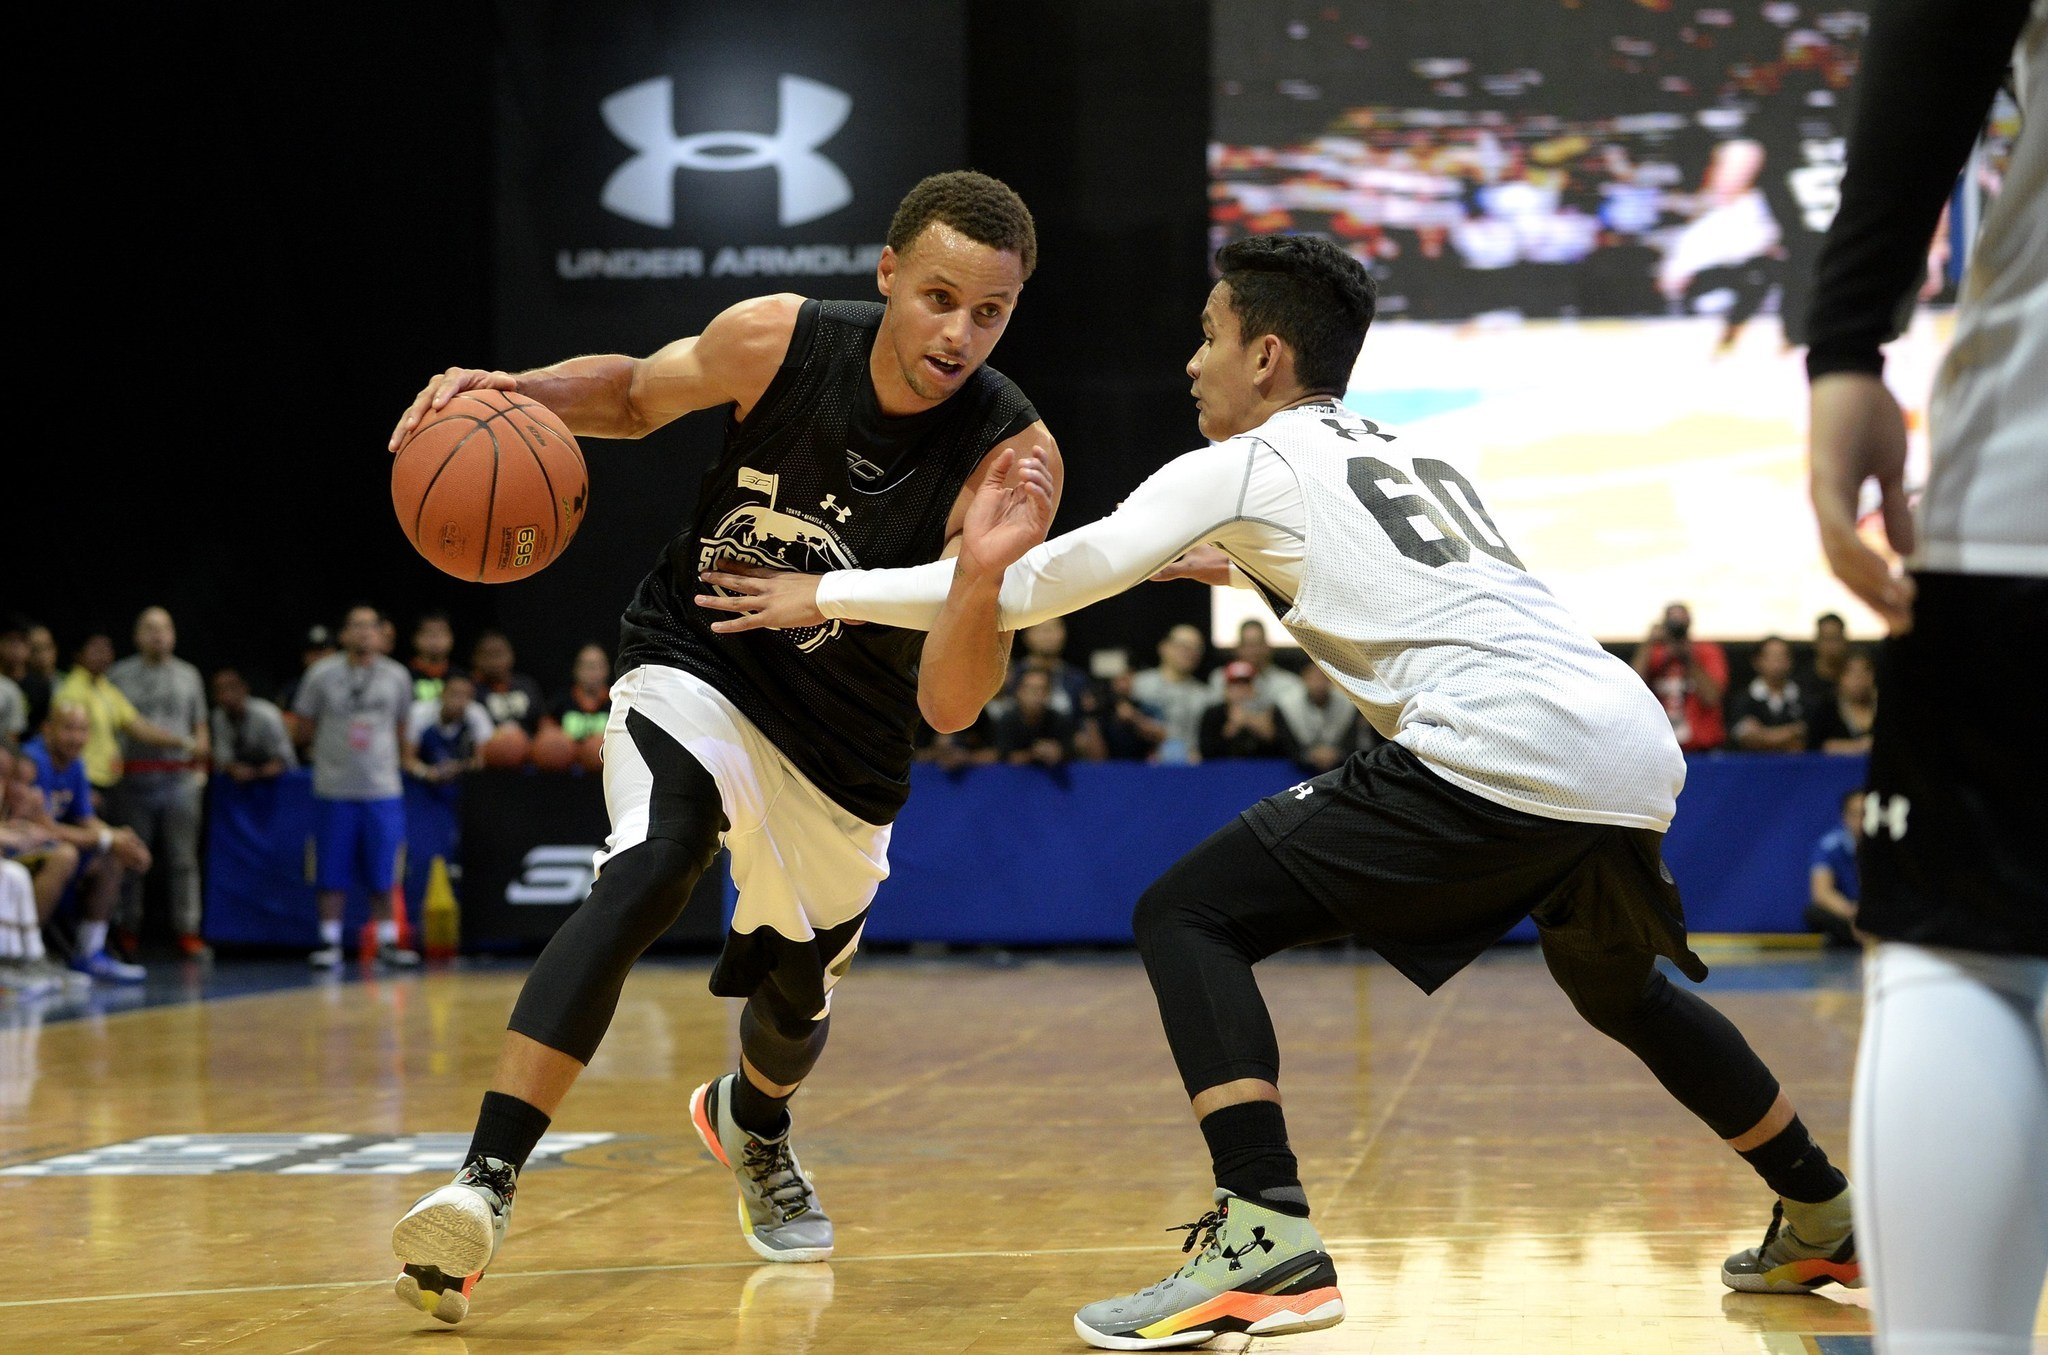 a6af31a6dbc Targeting rising stars, Under Armour hopes its basketball footwear business  can soar - Baltimore Sun